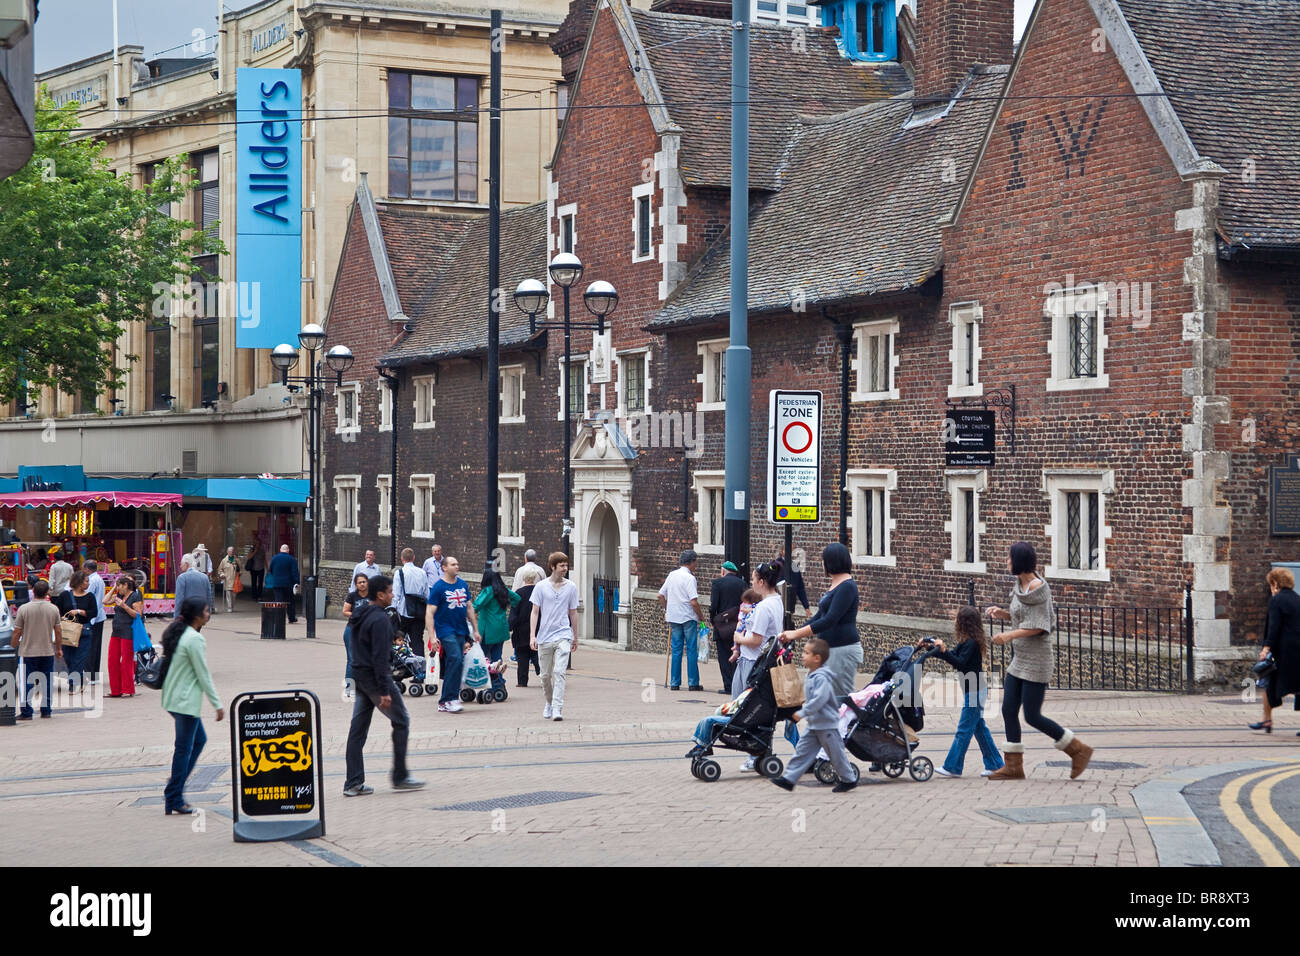 The shopping precinct, Croydon - Stock Image